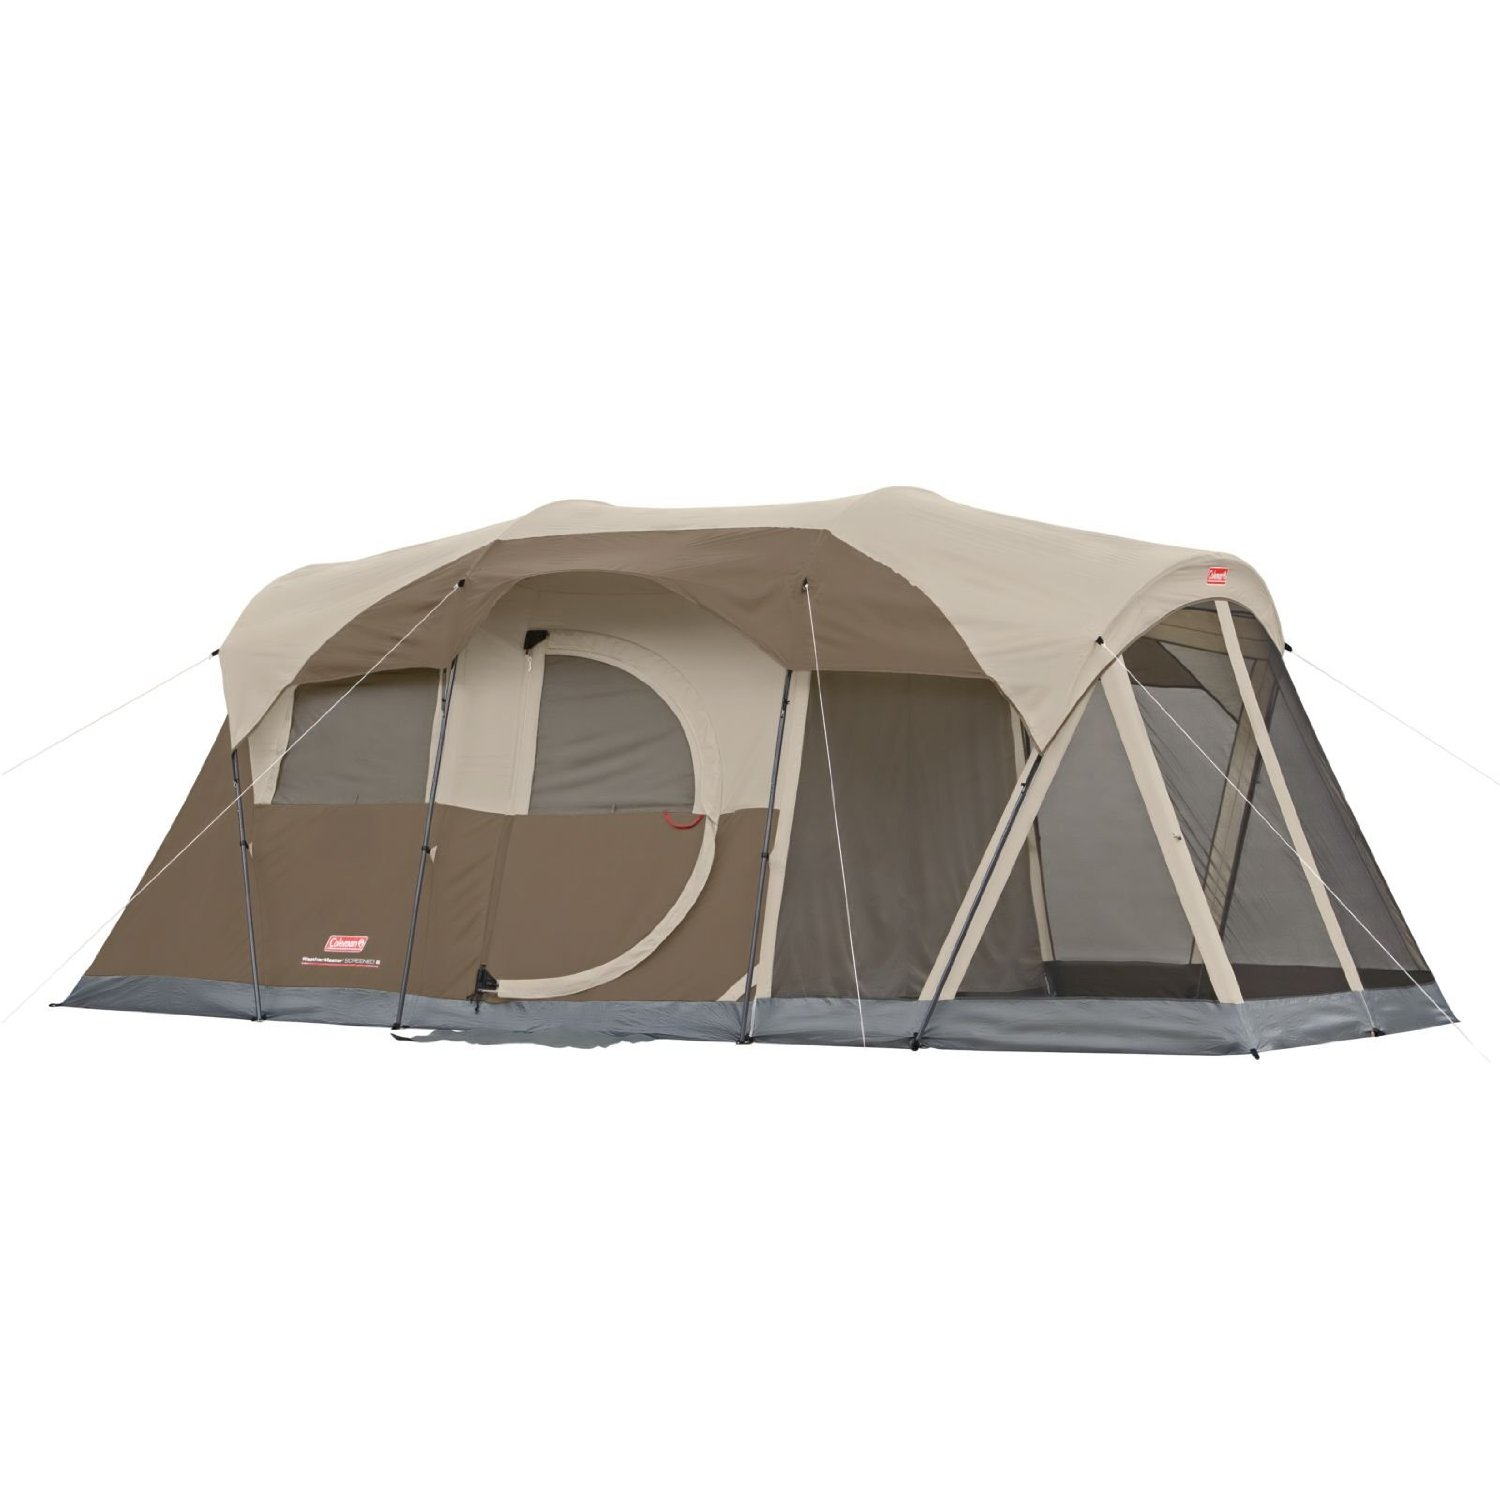 Coleman WeatherMaster 6-Person Screened Tent  sc 1 st  Walmart.com & Coleman WeatherMaster 6-Person Screened Tent - Walmart.com